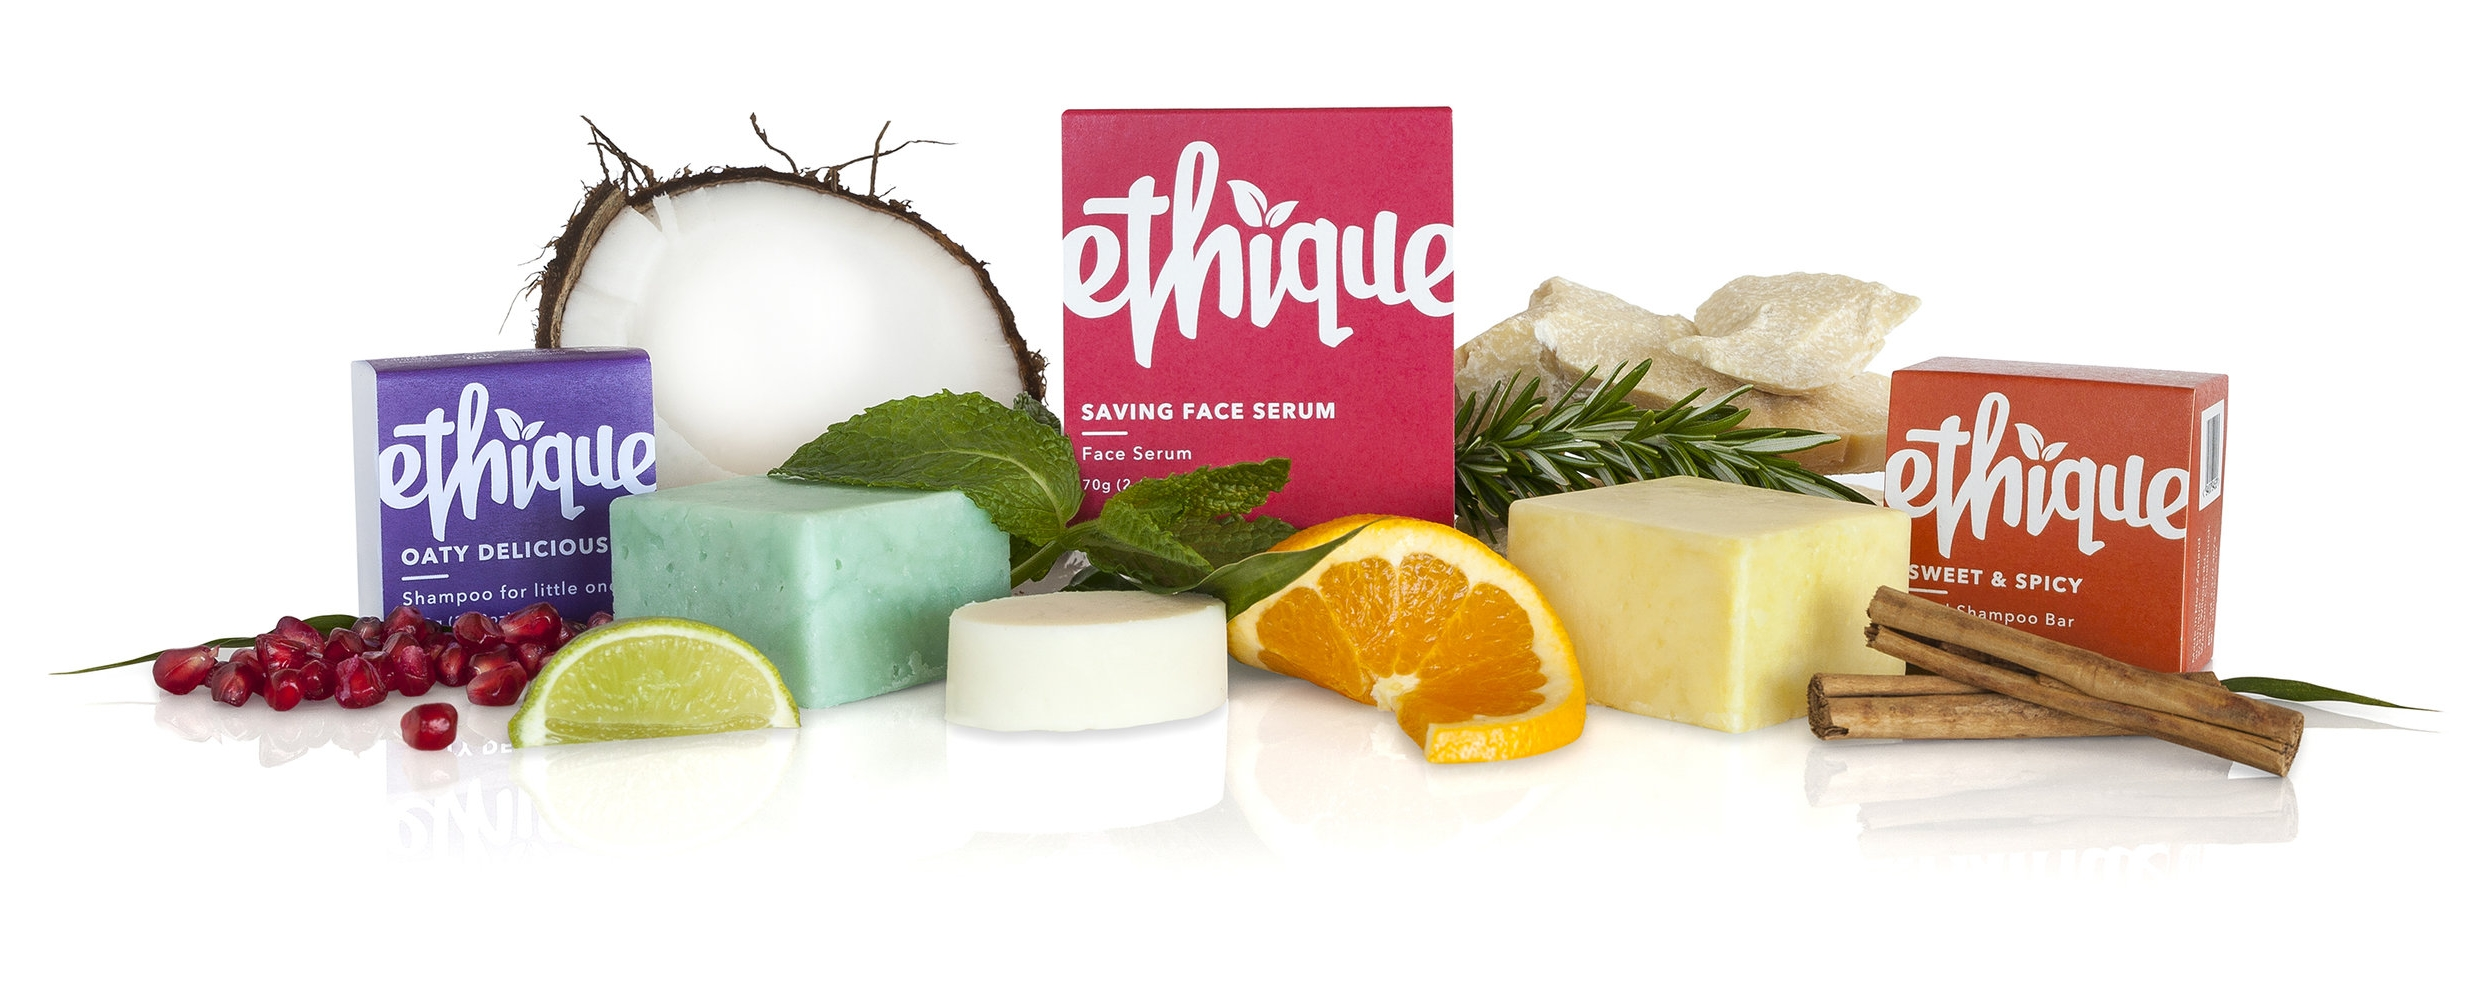 Ethique Oaty Delicious for little ones, Saving Face Serum & Sweer & Spicy Shampoo Bar (ingredient view).jpg